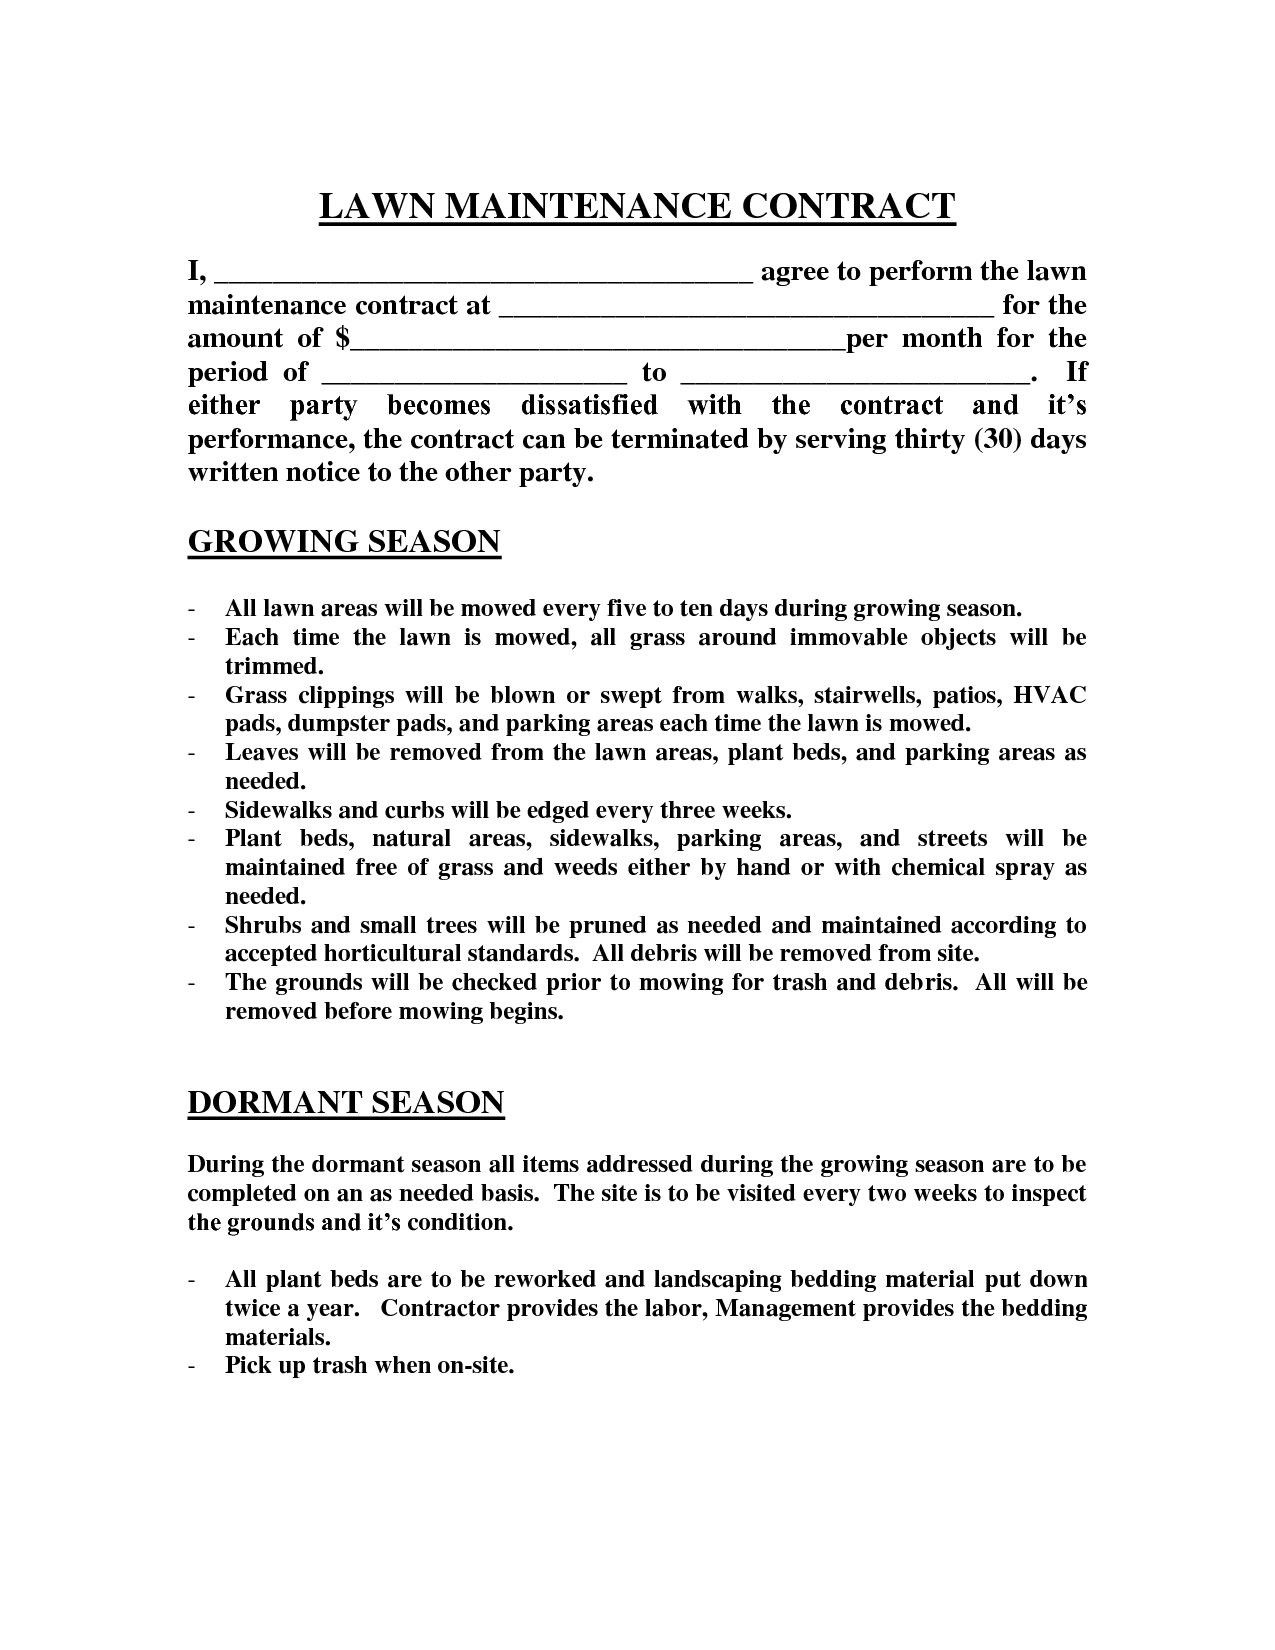 Lawn Maintenance Contract Images